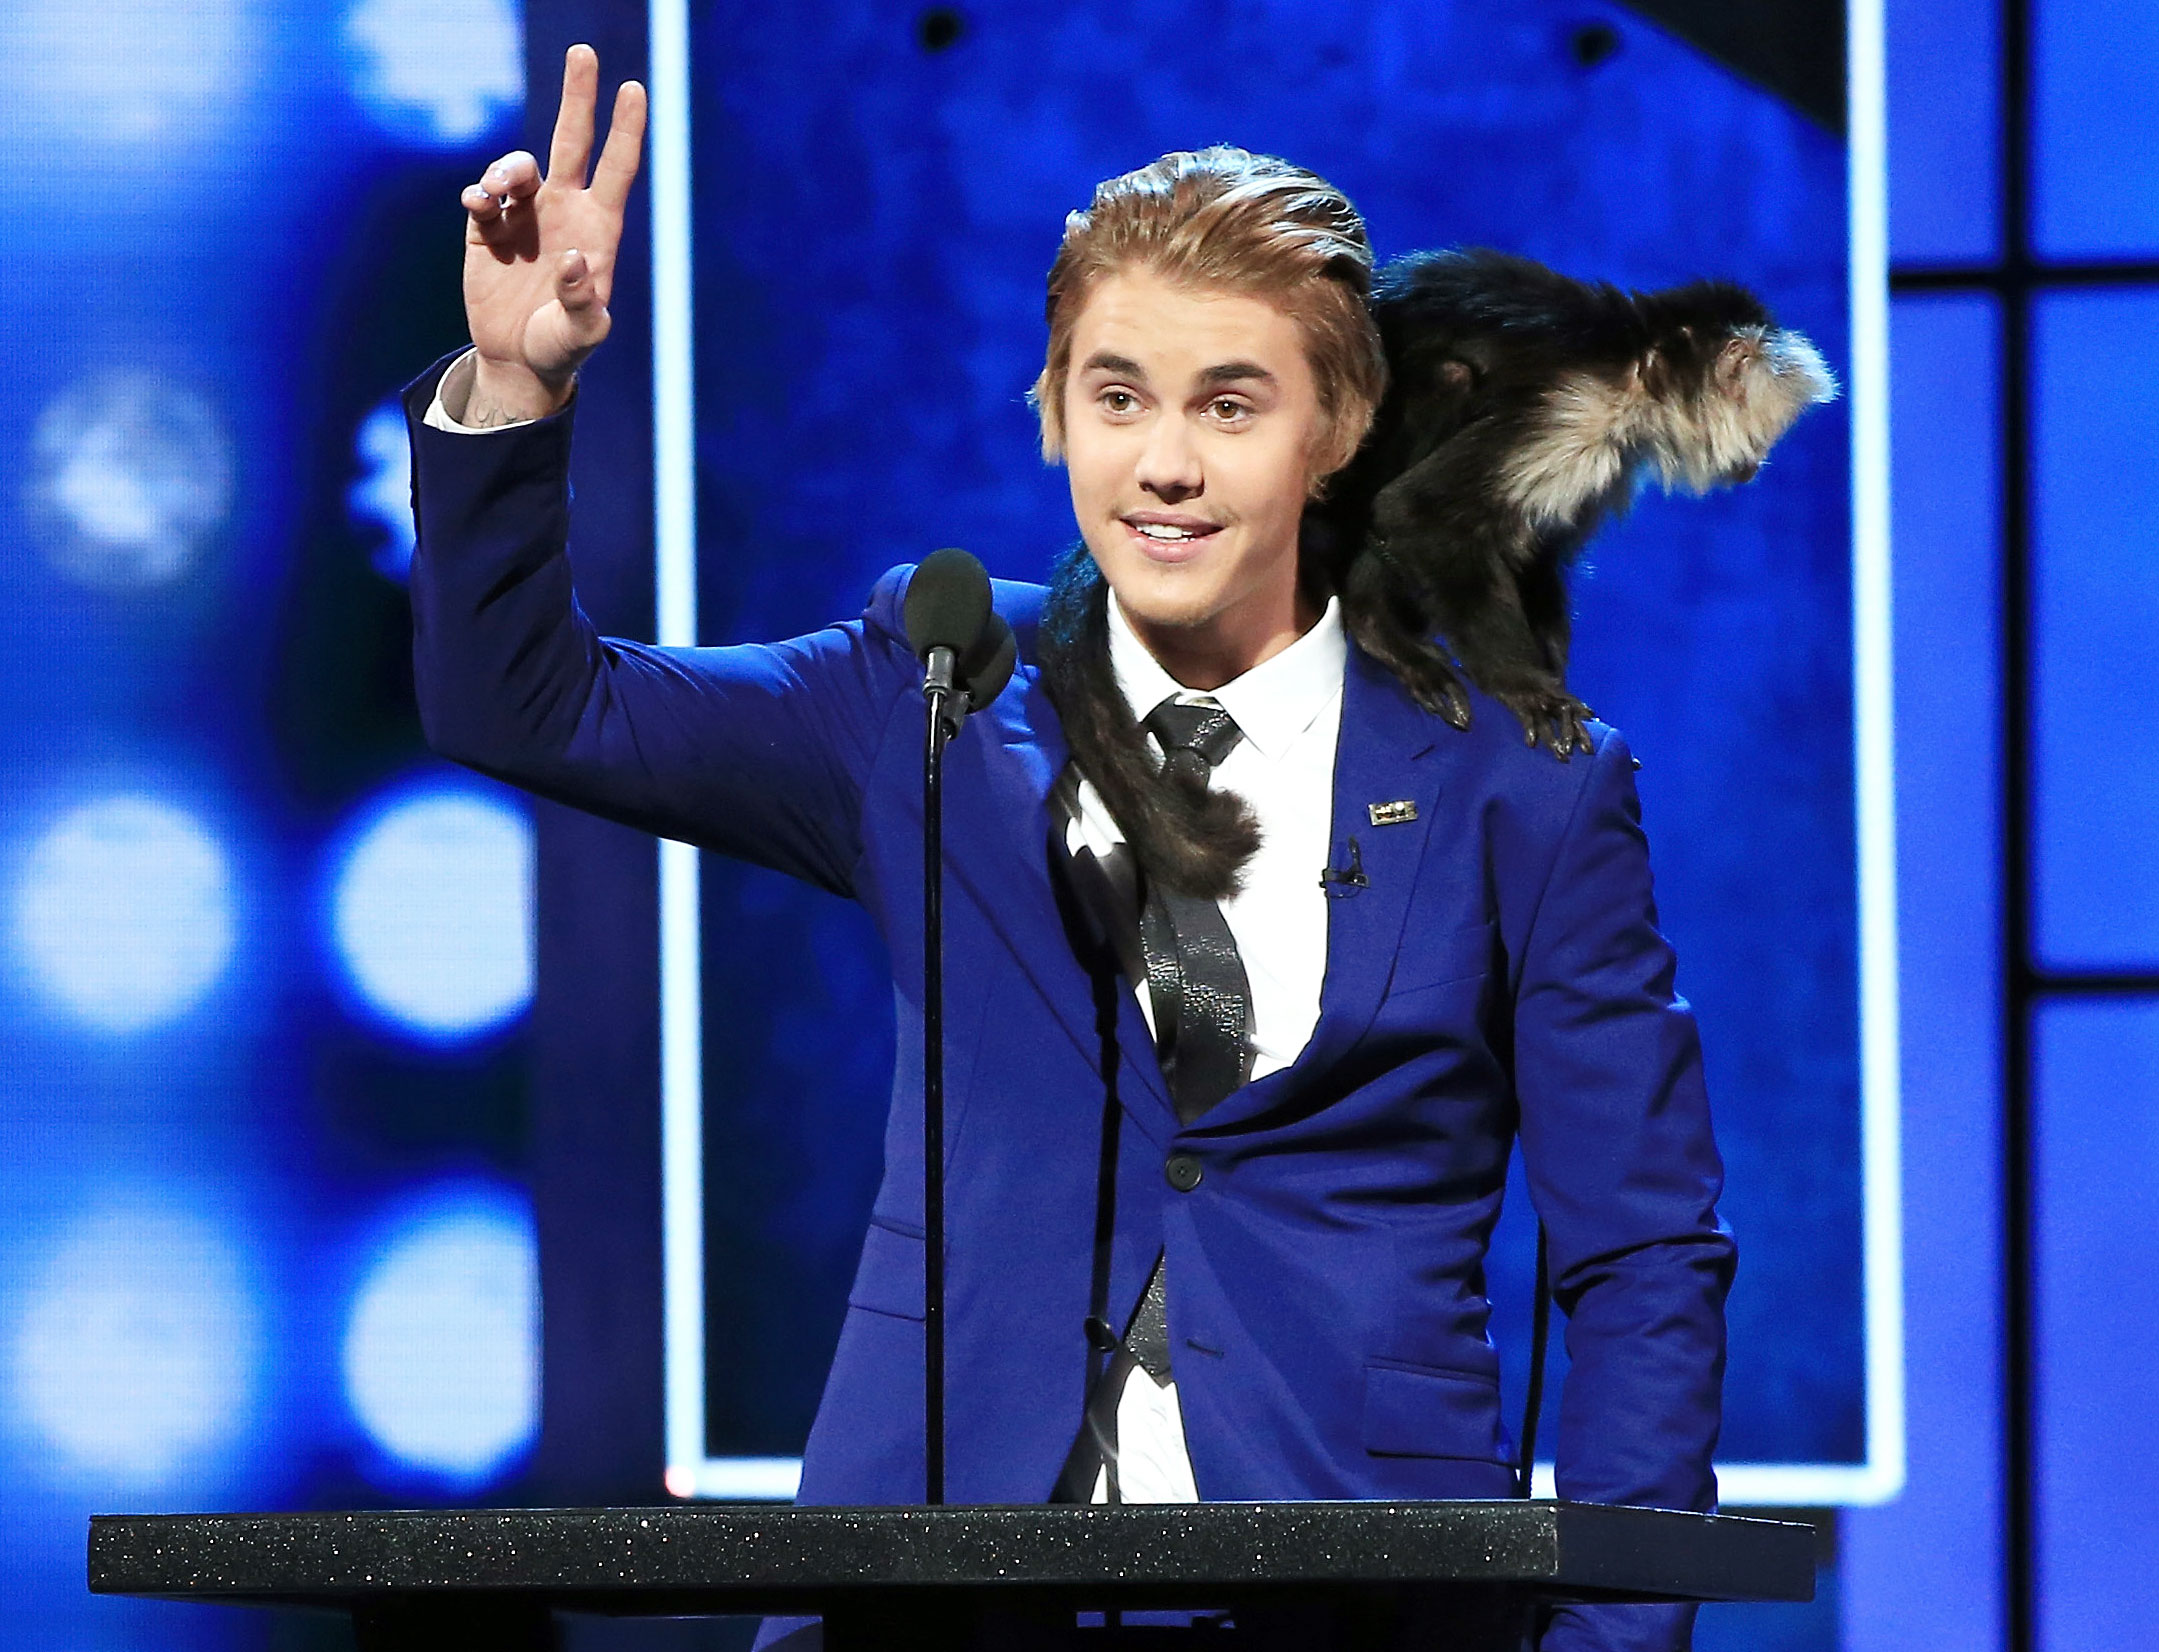 """Justin Bieber Through The Years Comedy Central Roast - Comedy Central hosted its Roast of Justin Bieber at his request with roasters including Pete Davidson , Chris D'Elia , Will Ferrell , Shaquille O'Neal , Snoop Dogg and Martha Stewart . At the end of the night, Bieber roasted himself, joking, """"What do you get when you give a teenager $200 million? A bunch of has-beens calling you a lesbian for two hours."""""""